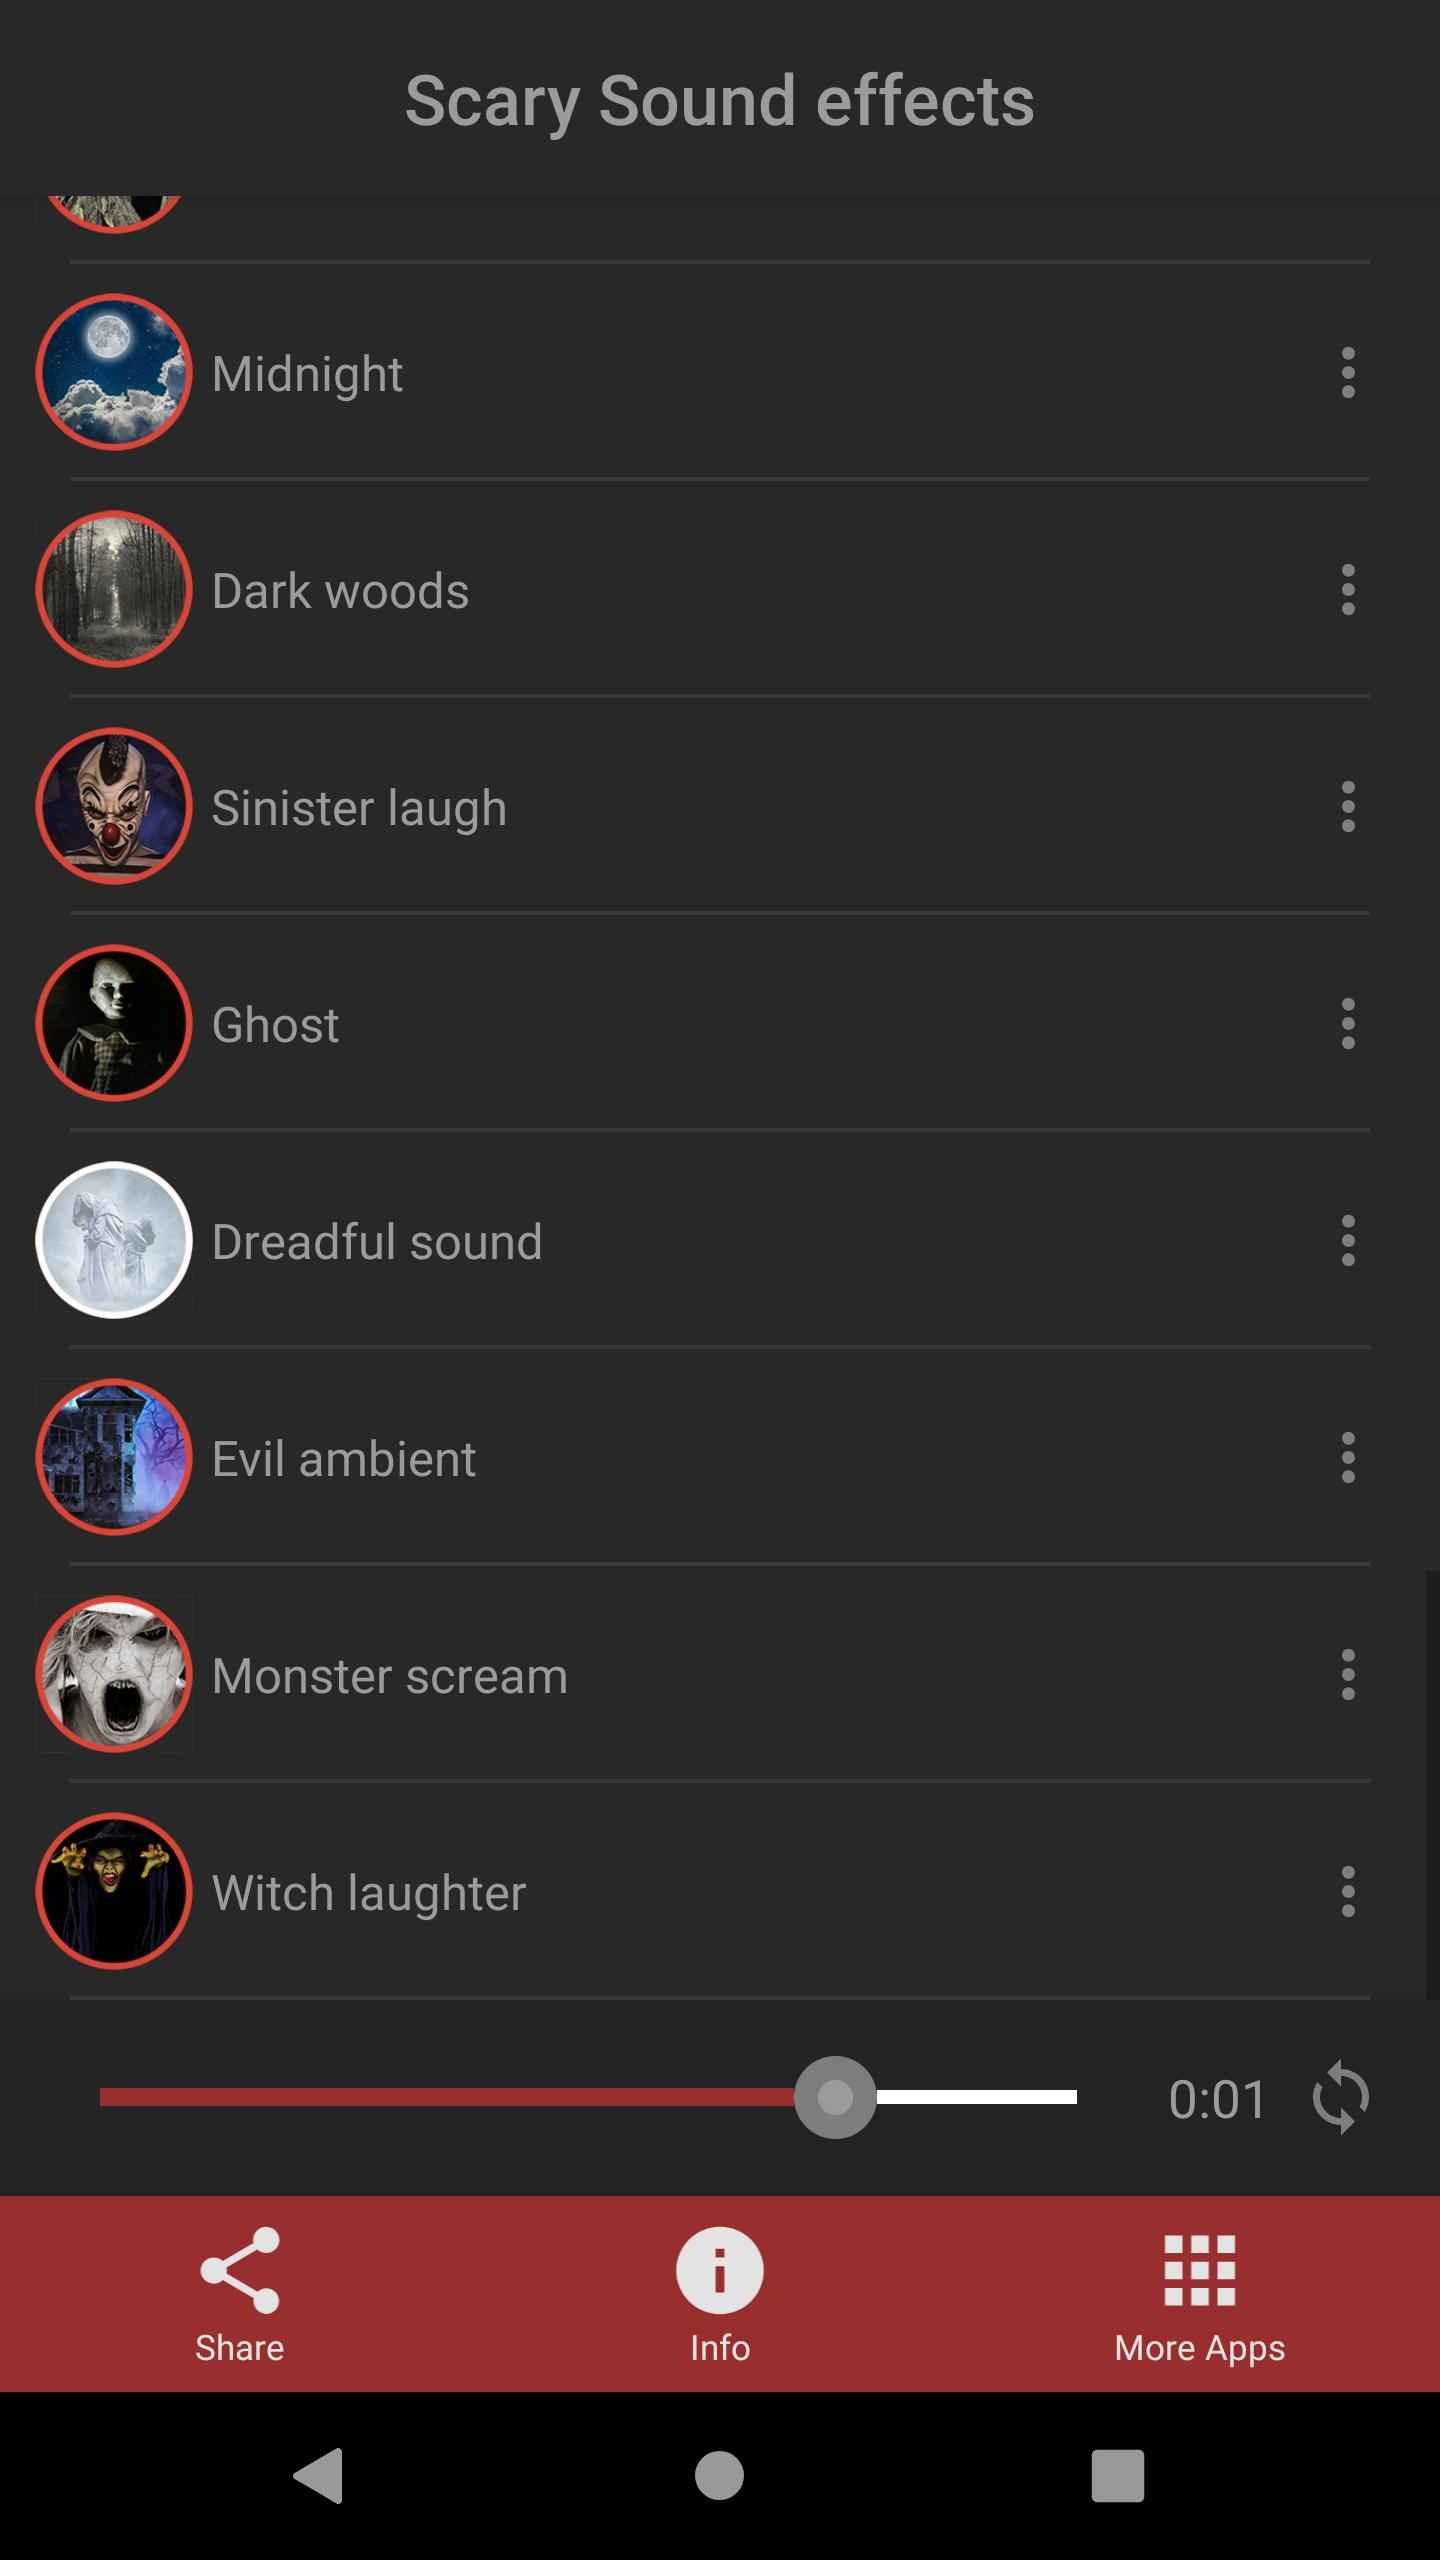 Scary Sound Effects for Android - APK Download